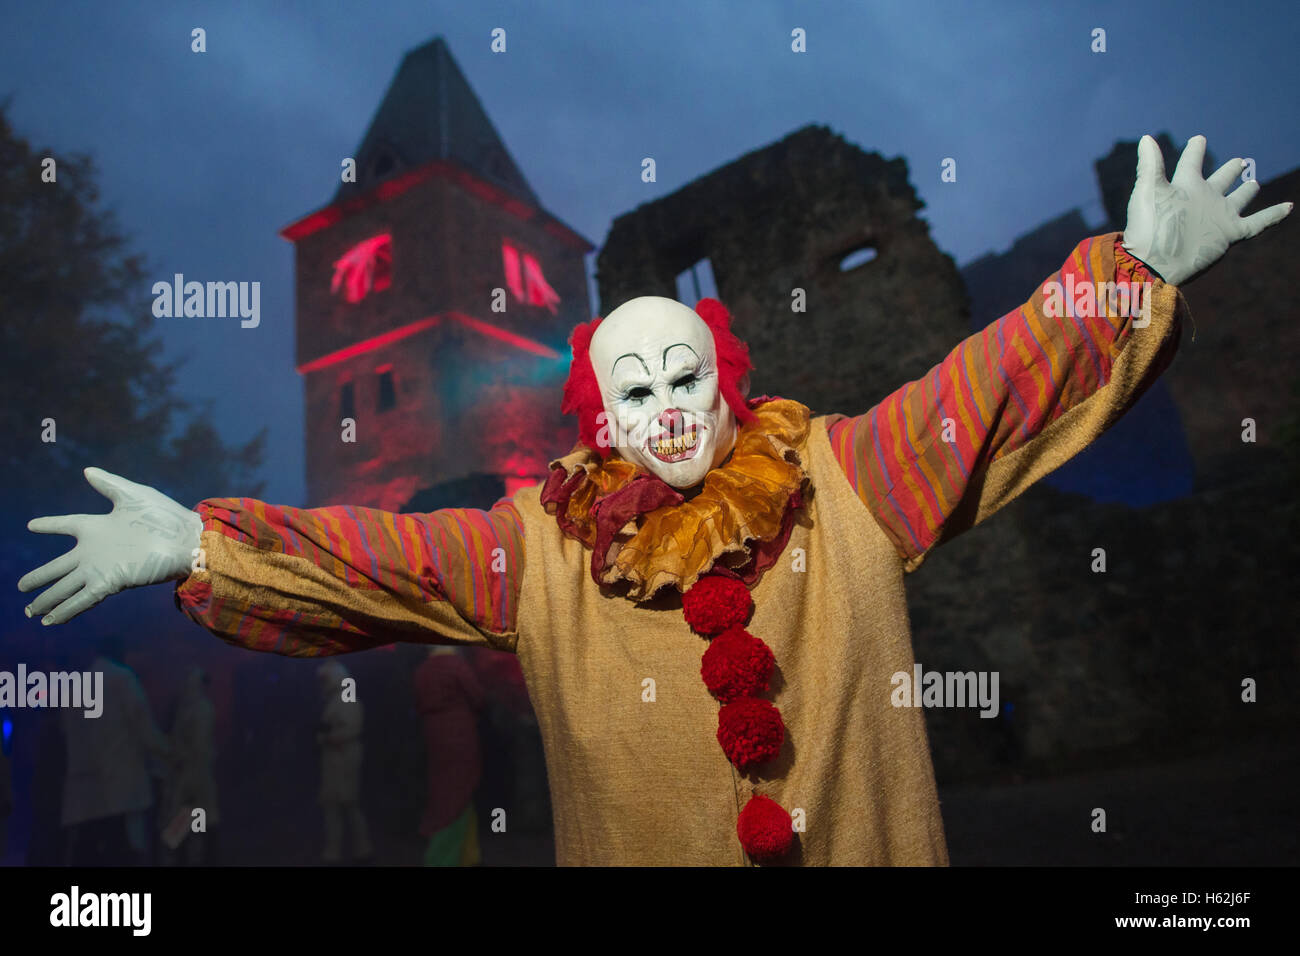 Muehltal, Germany. 22nd Oct, 2016. A visitor costumed as the clown 'Pennywise' from Steven King's 'It' - Stock Image